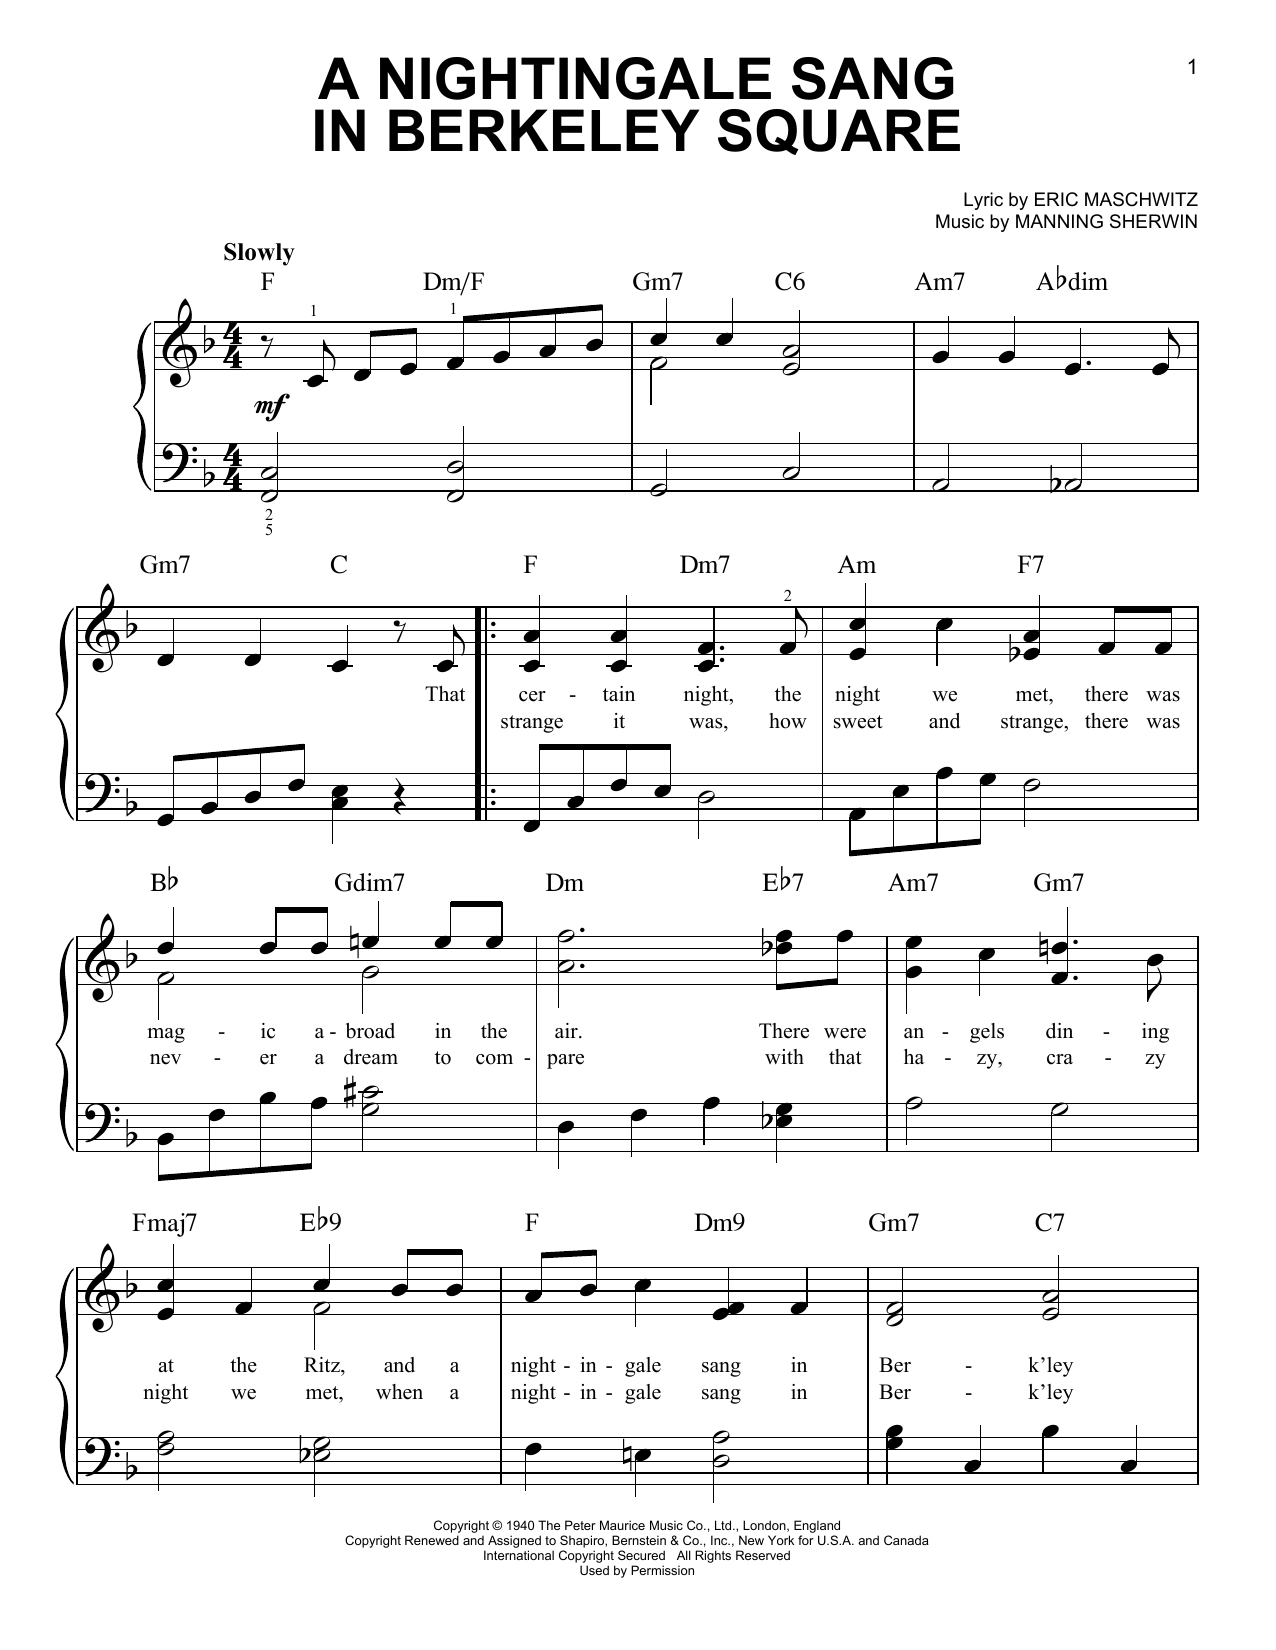 A Nightingale Sang In Berkeley Square sheet music for piano solo (chords) by Manning Sherwin